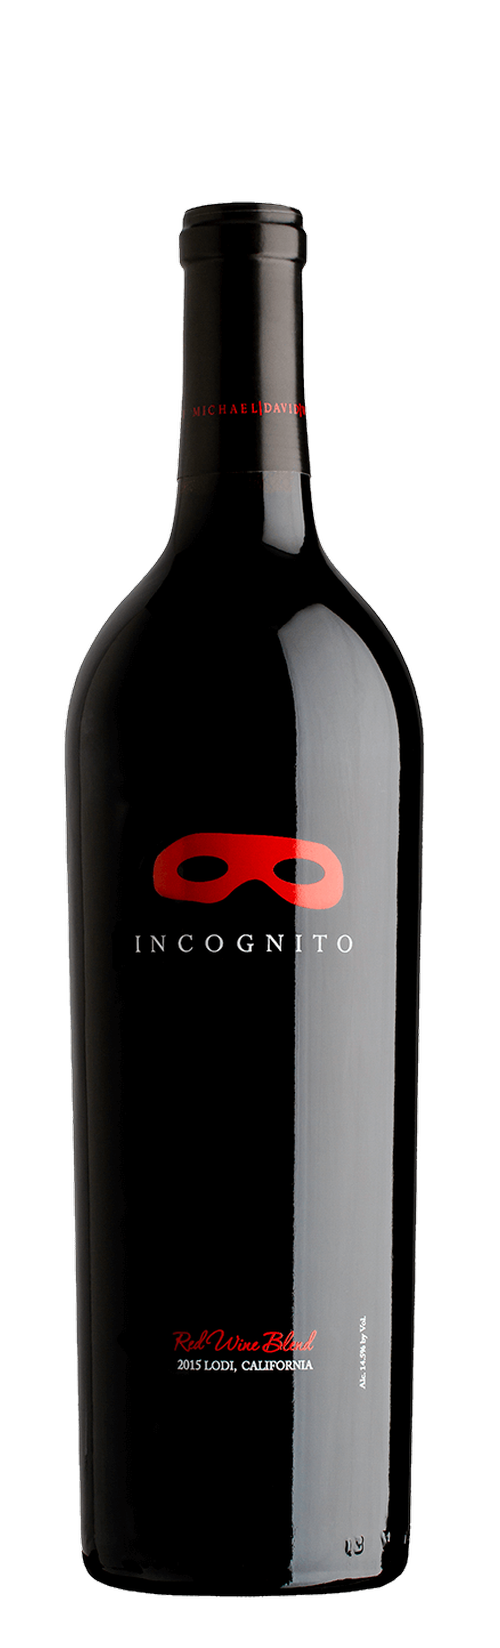 2015 Incognito Red Blend